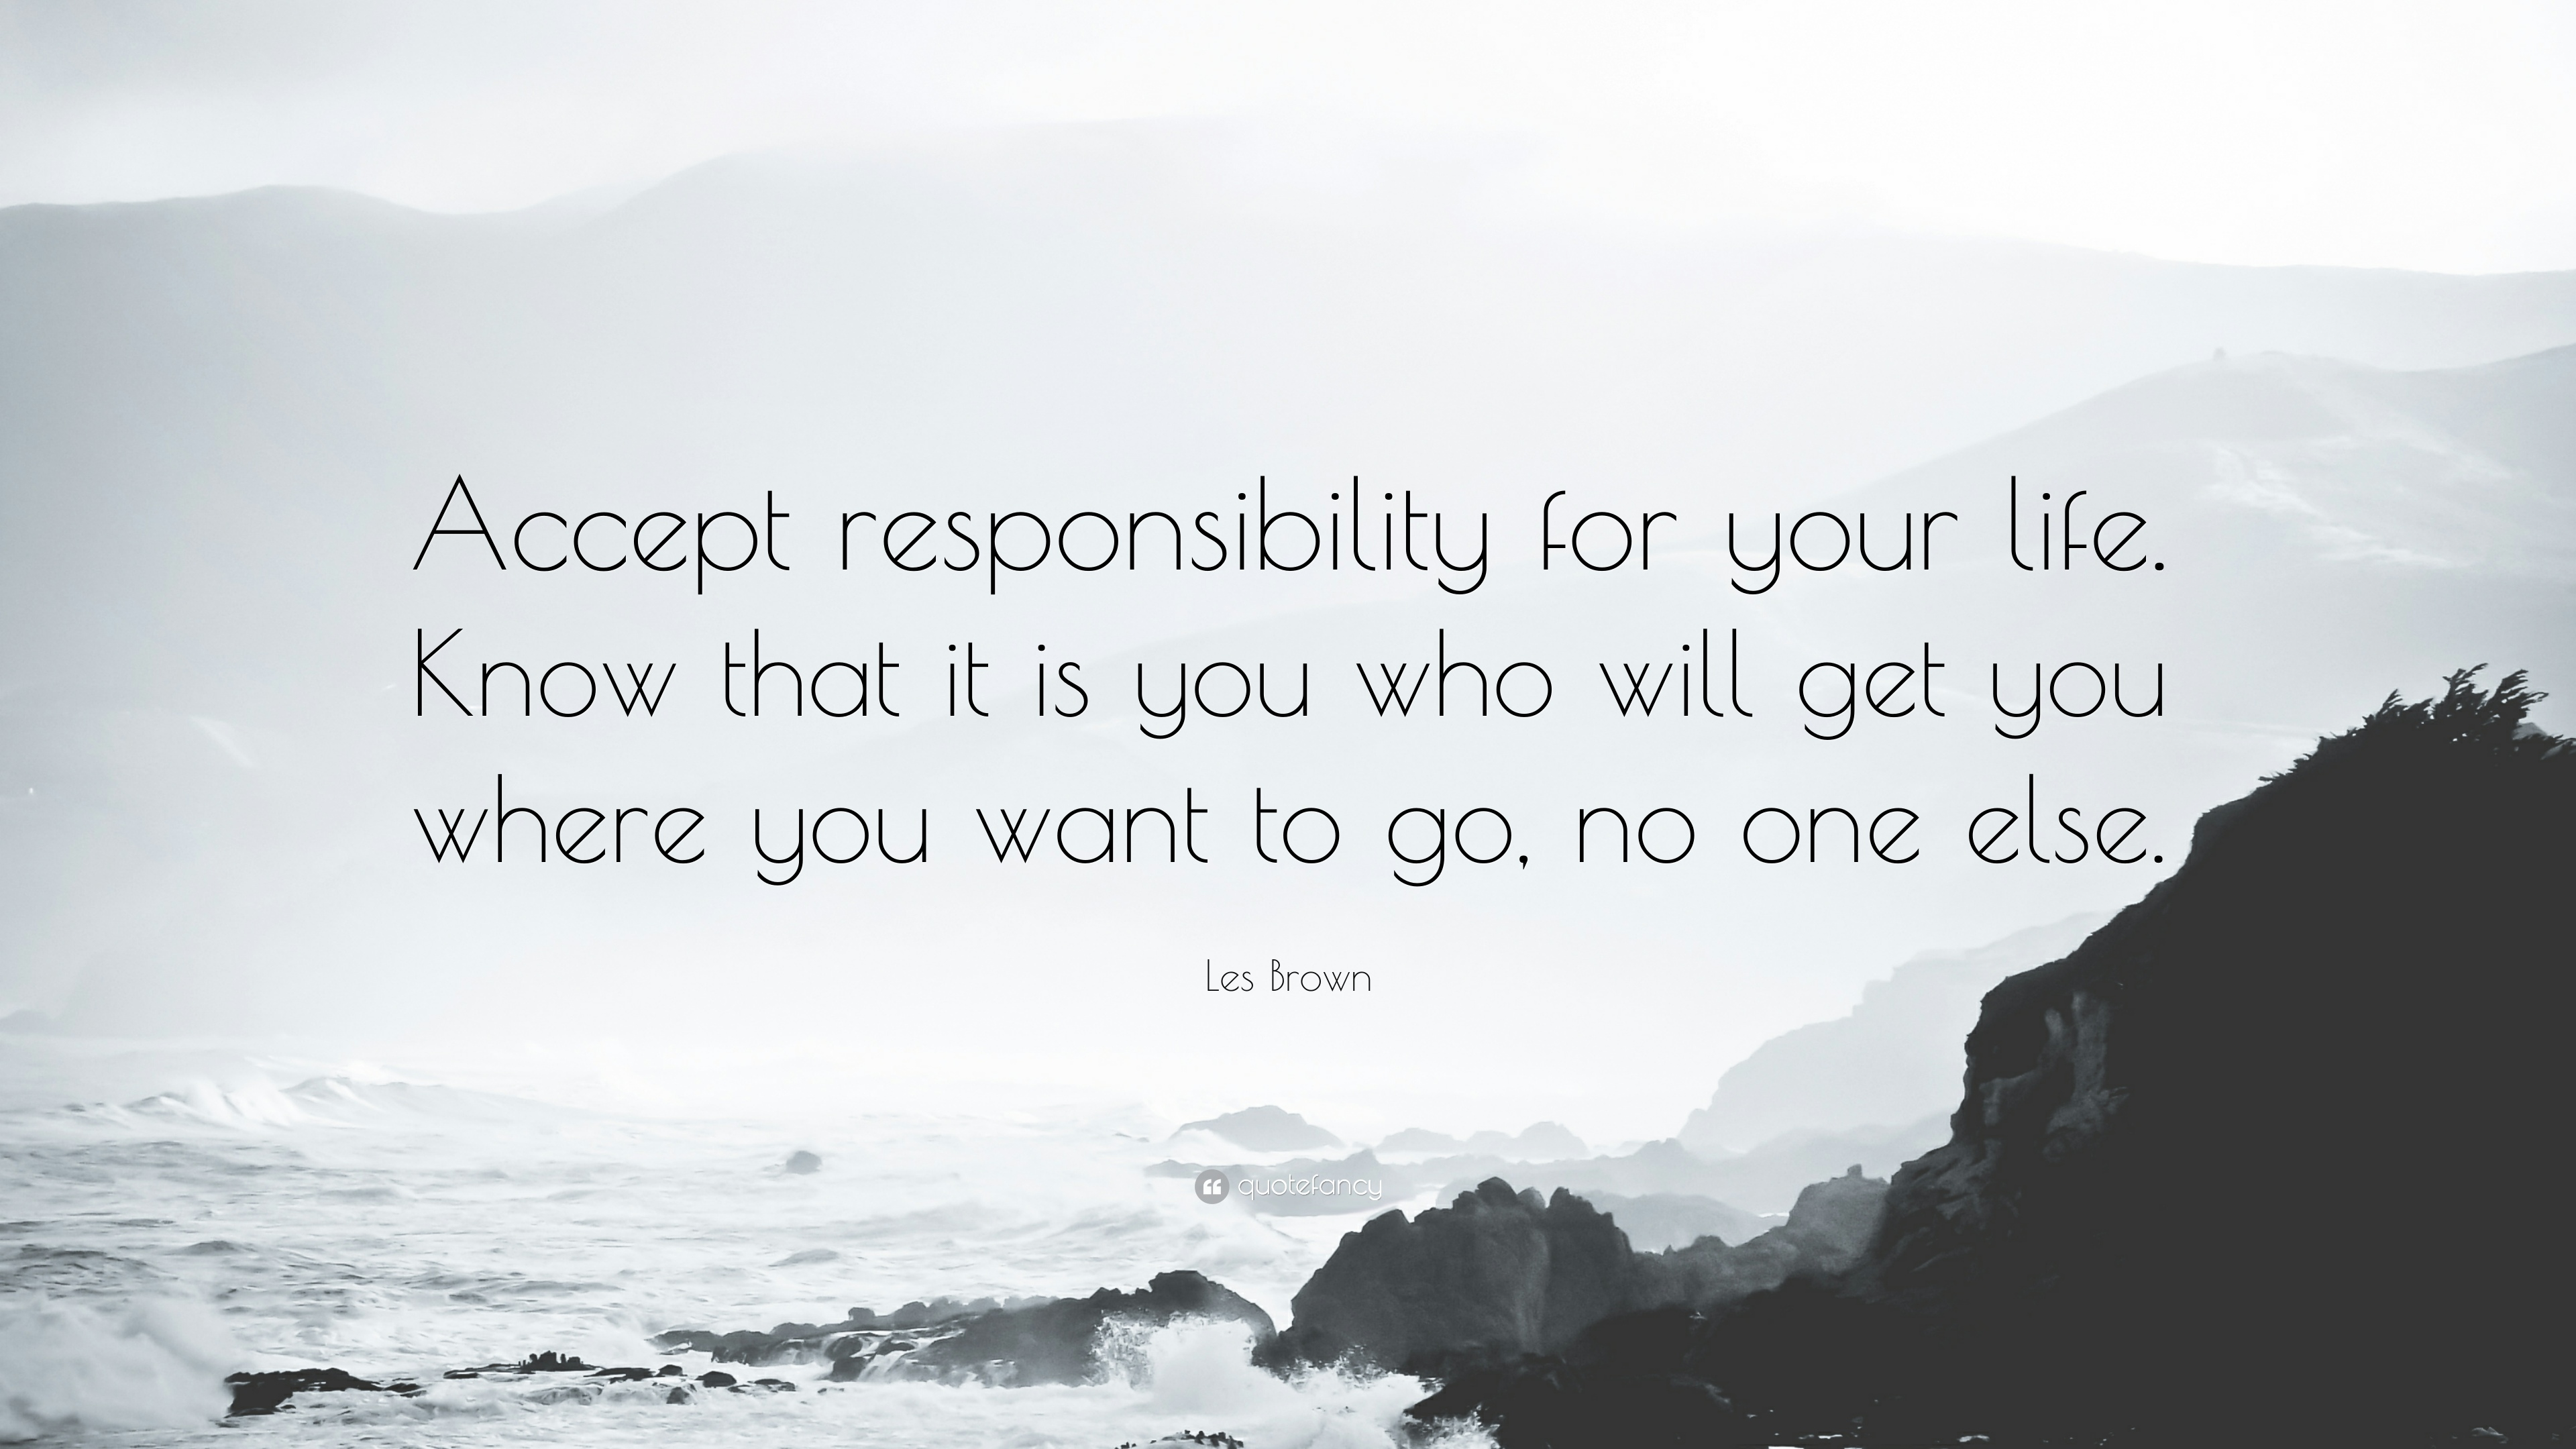 Kết quả hình ảnh cho Accept responsibility for your life. Know that it is you who will get you where you want to go, no one else.